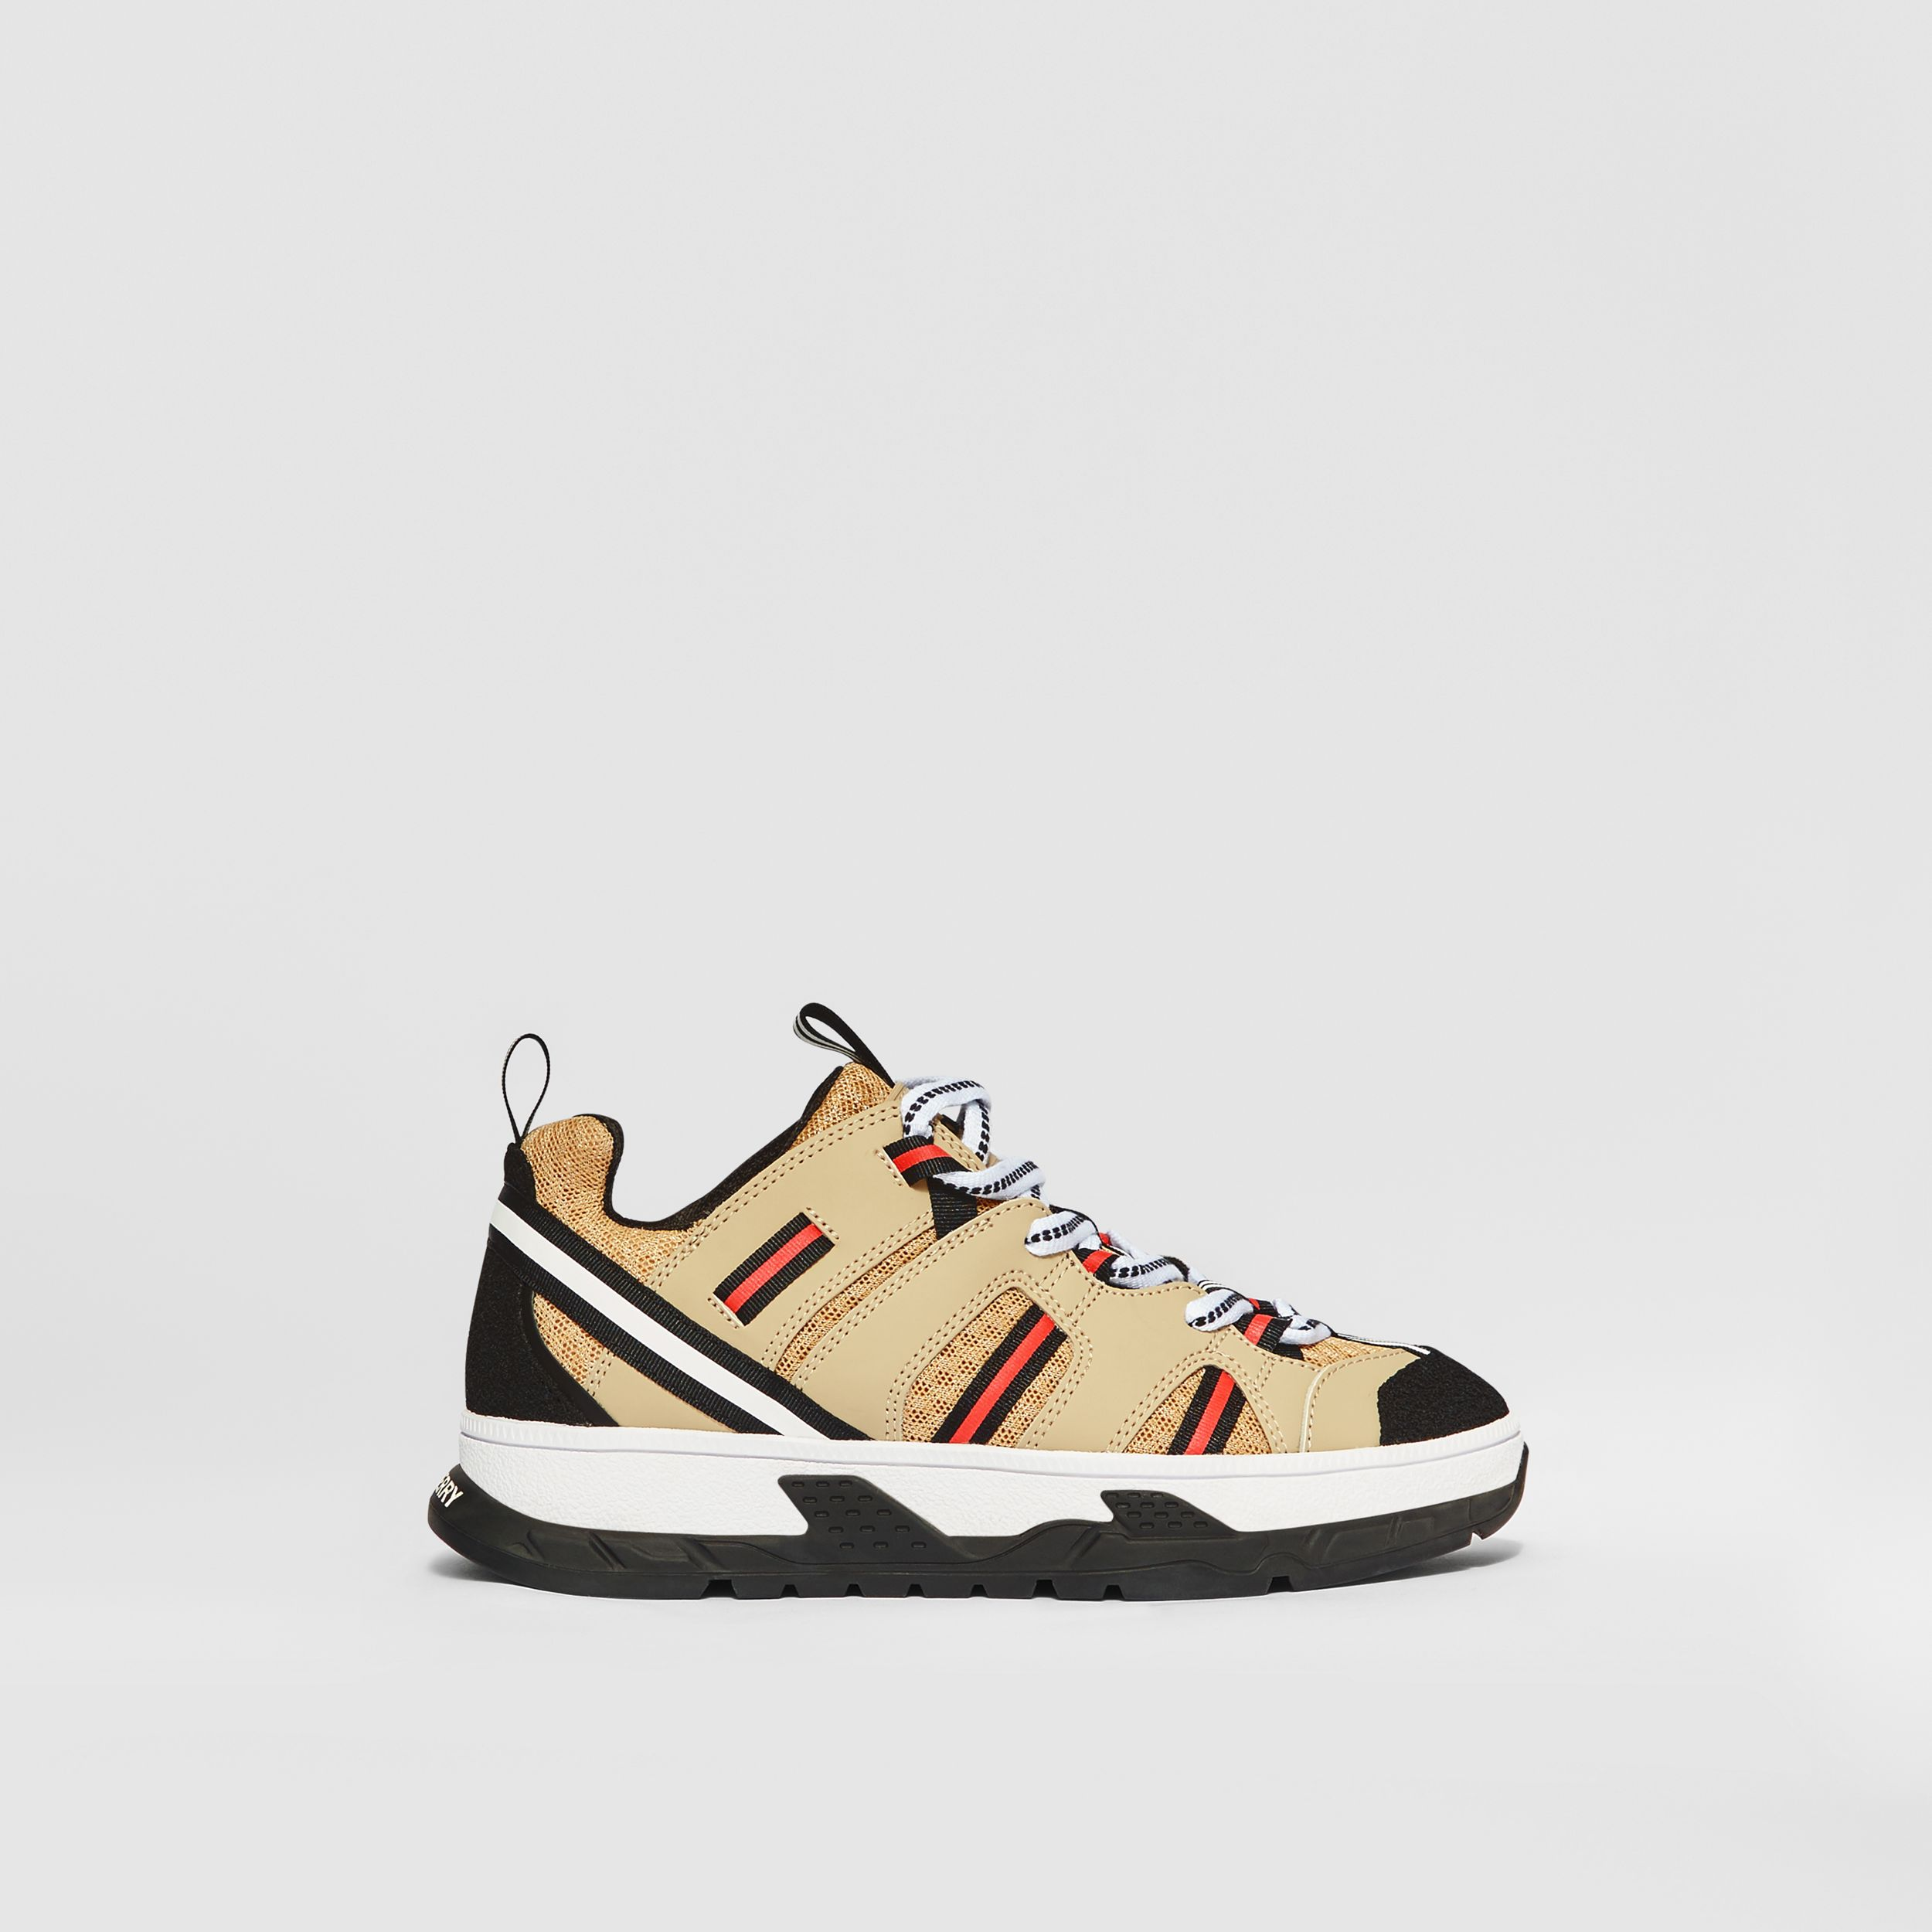 Nubuck and Mesh Union Sneakers in Archive Beige - Children | Burberry - 4